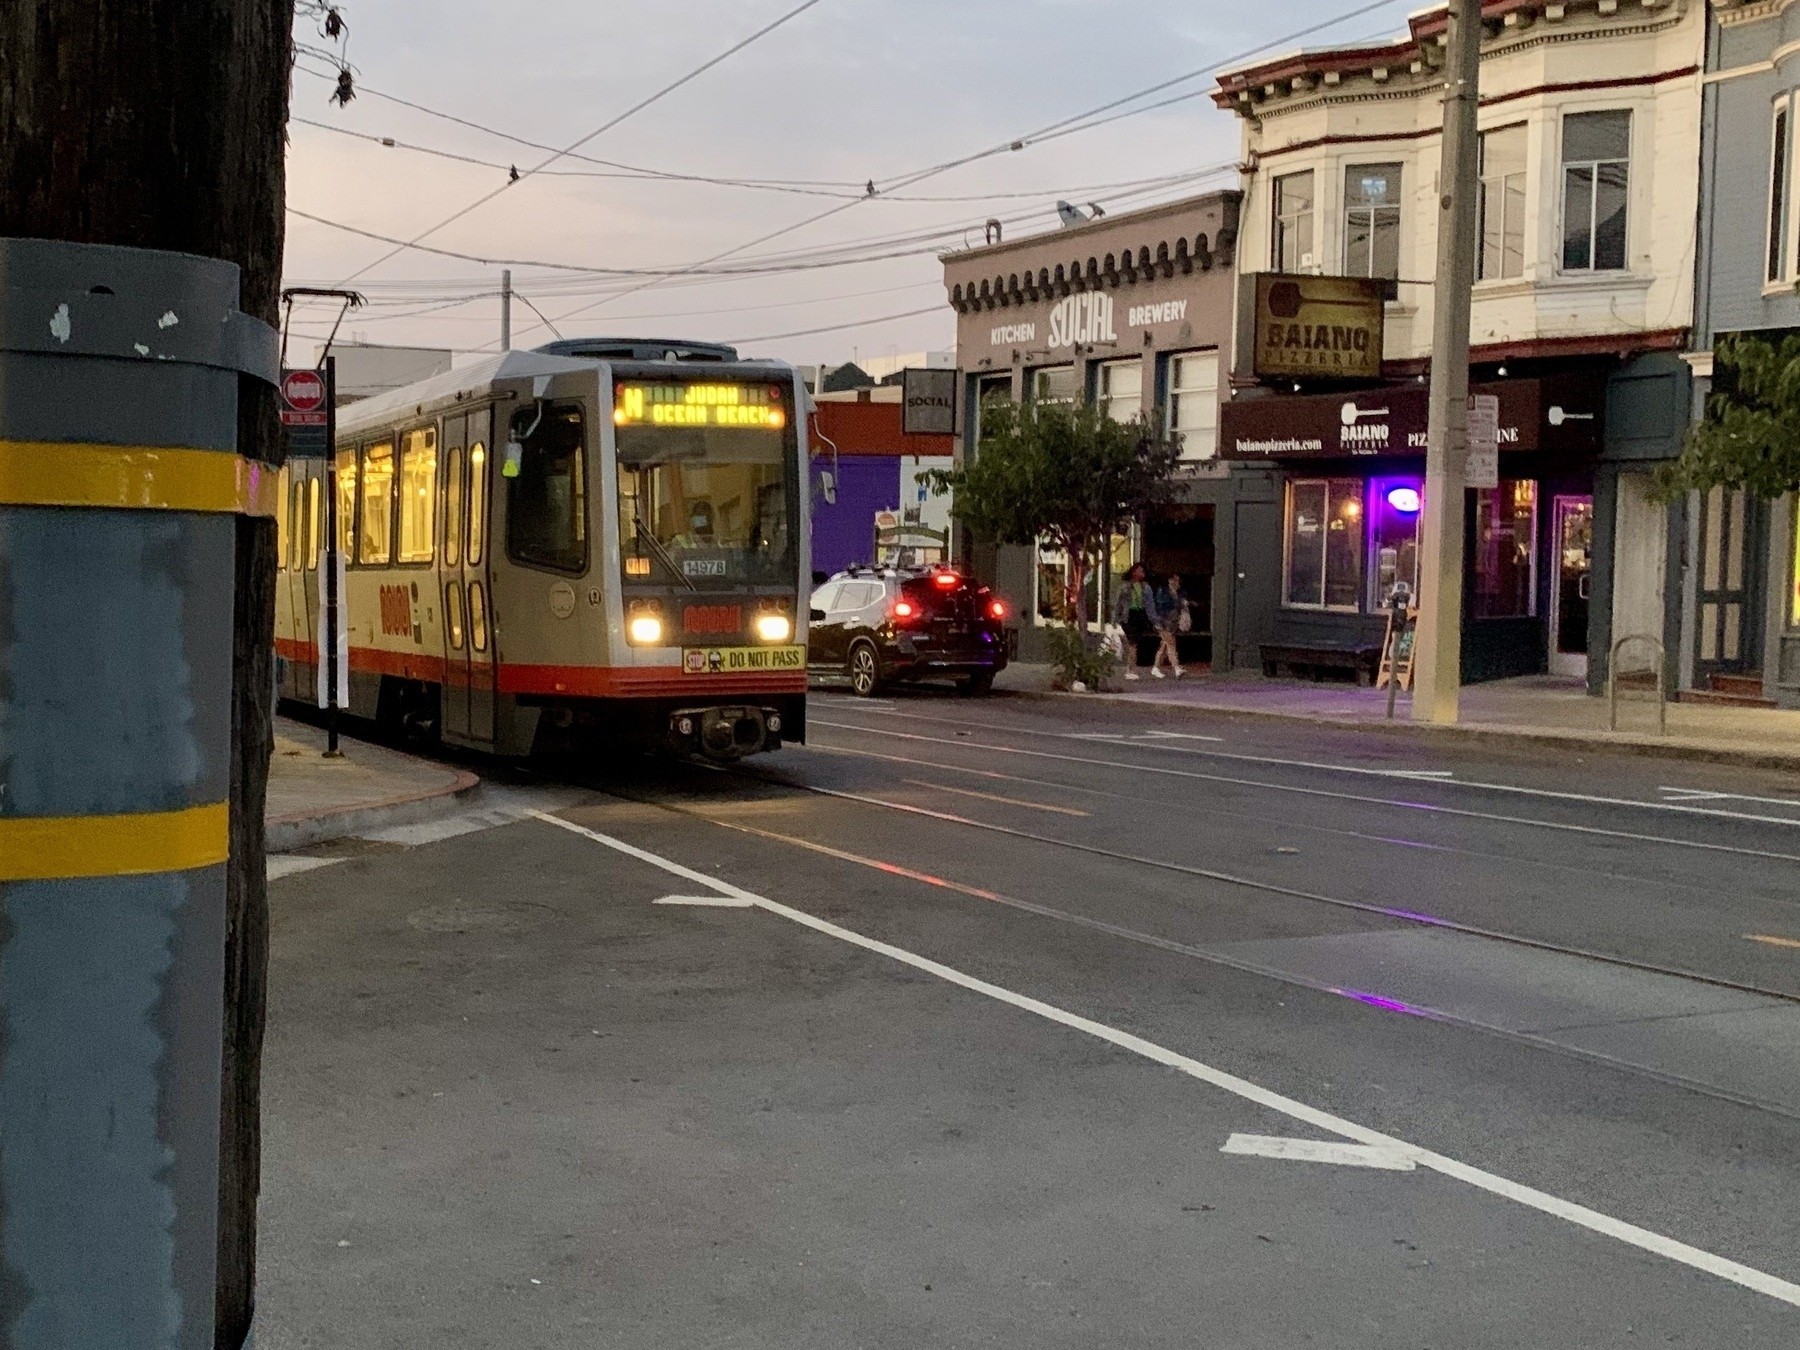 N Judah Train on 9th Ave